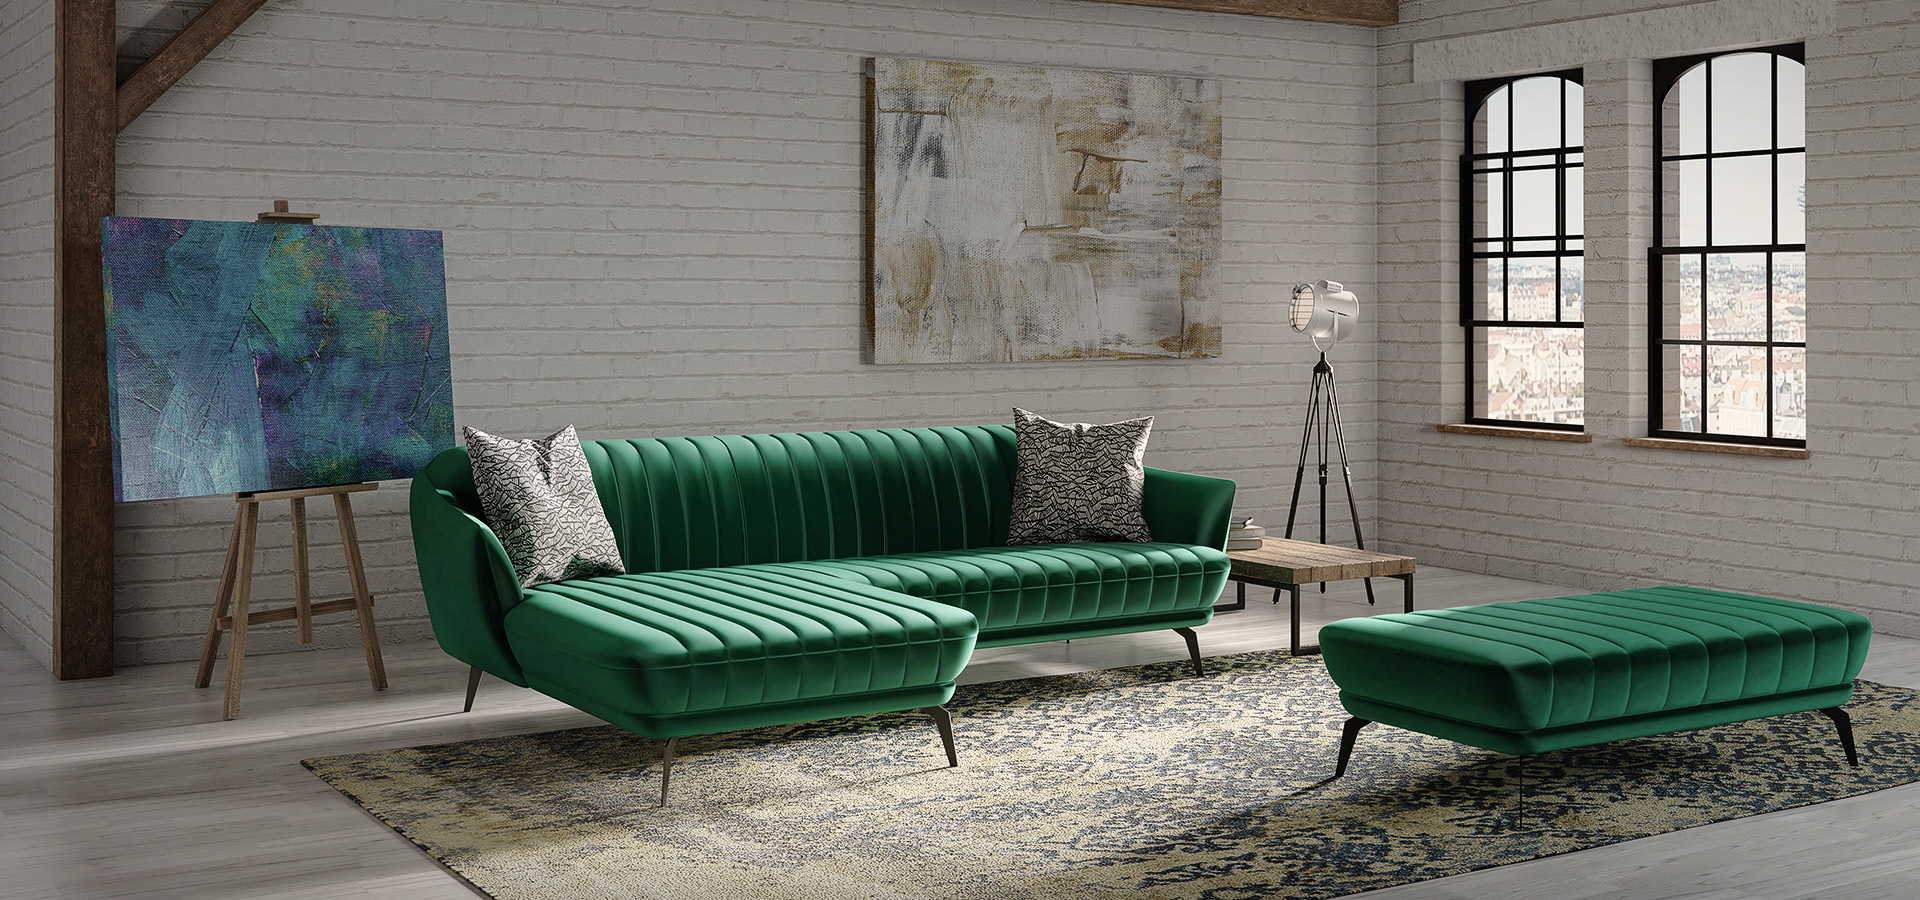 Flori collection – corner sofa